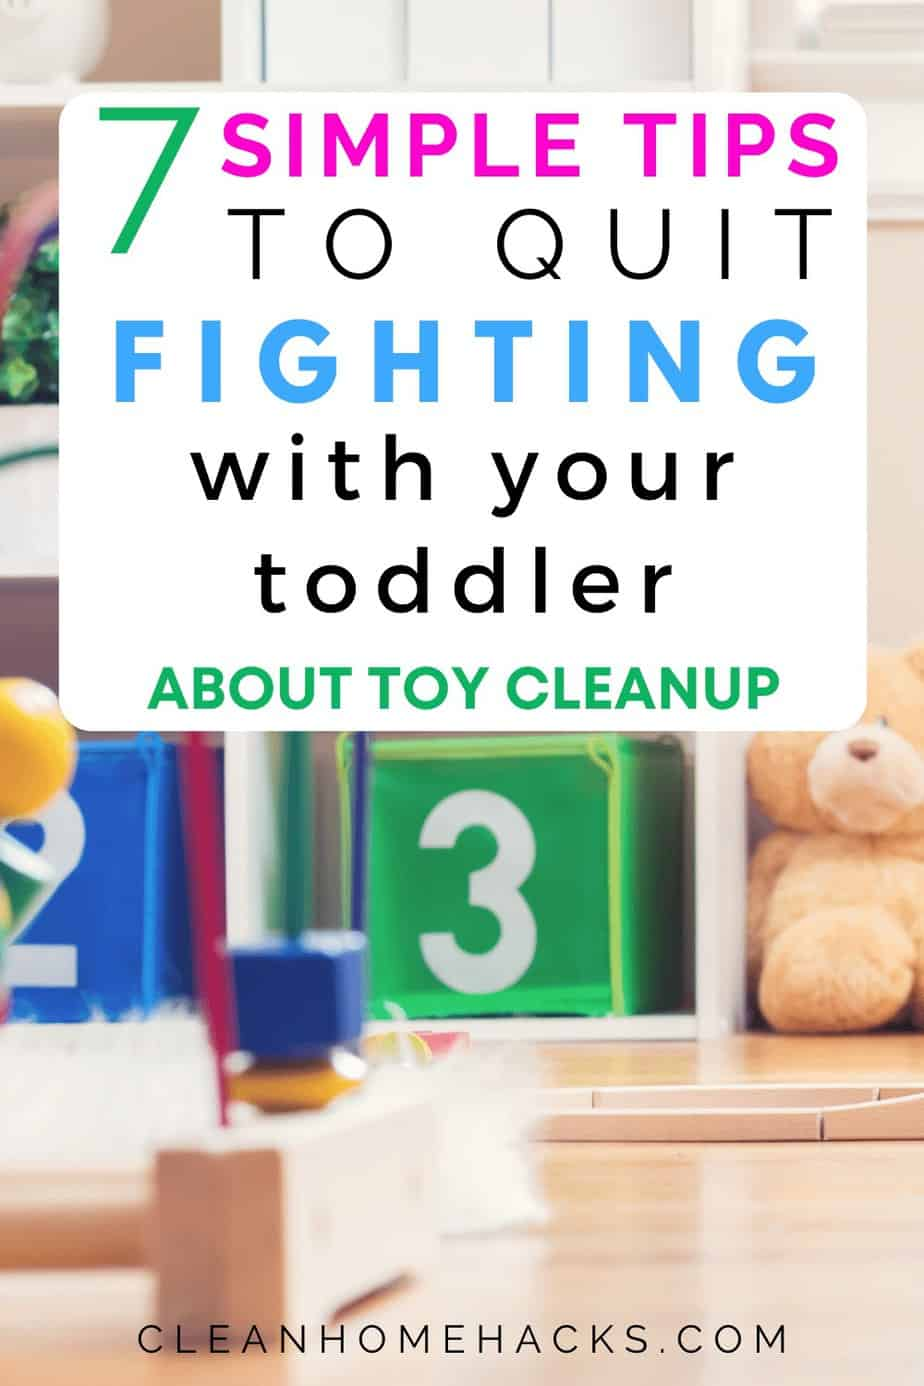 childrens playing blocks on pinterest image to post 7 simple tips to stop fighting with your toddler about toy cleanup